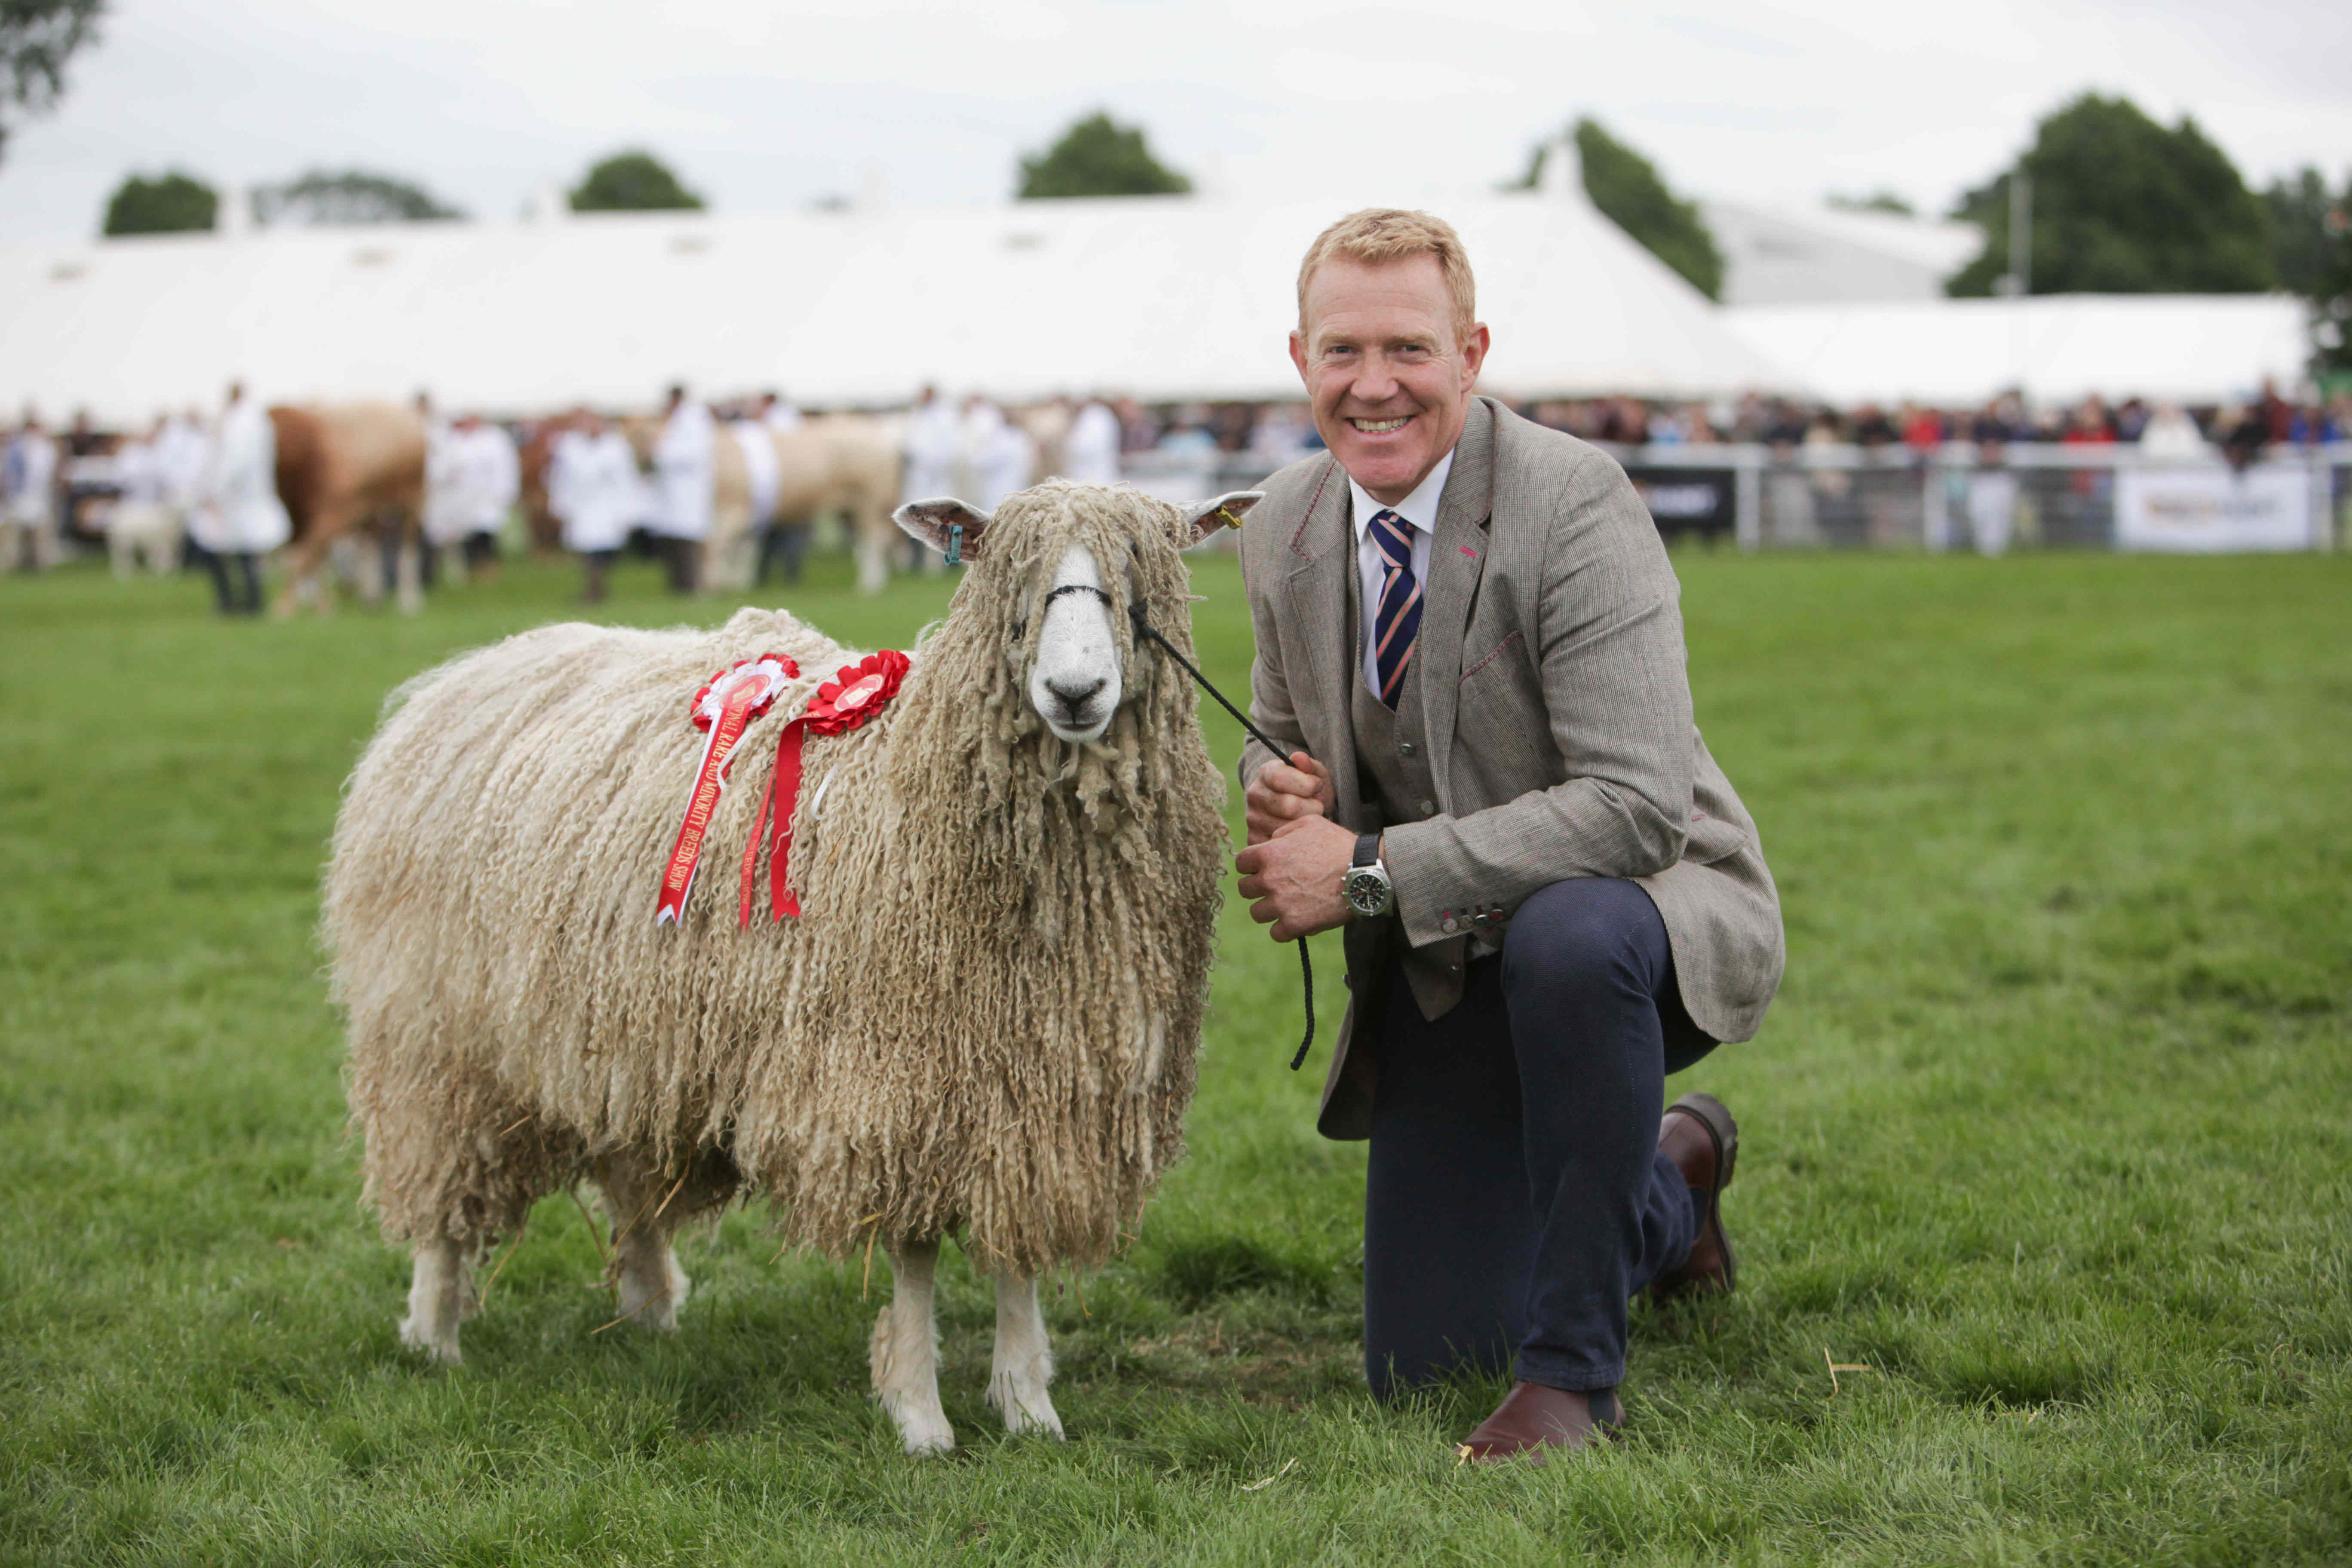 Royal Three Counties Show - Adam Henson and Sheep.jpg